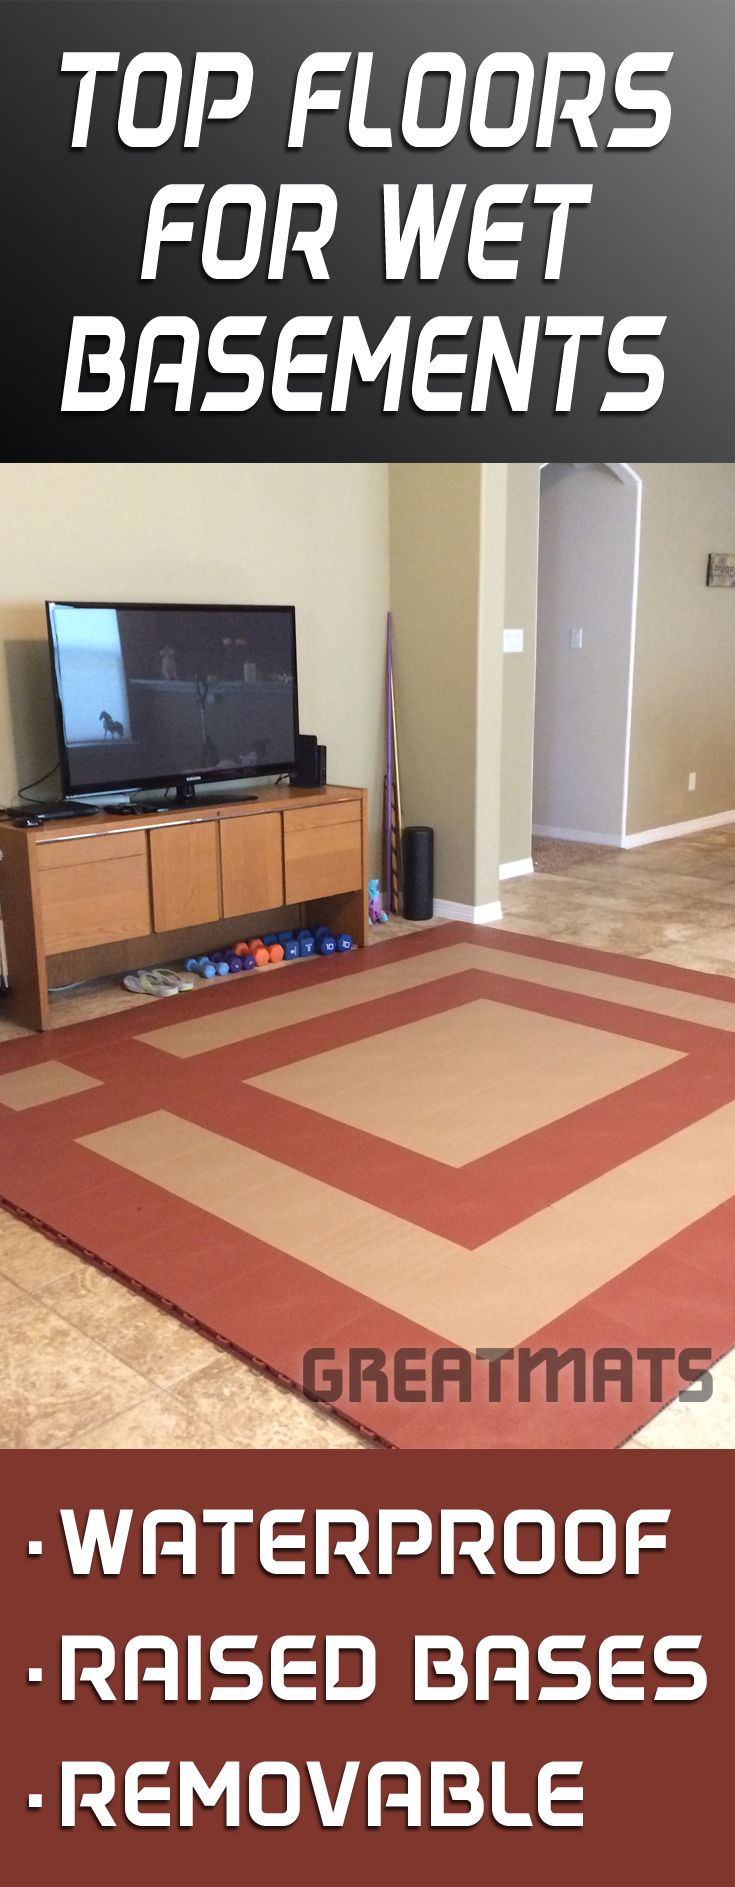 45 best images about basement flooring on pinterest for Basement flooring options